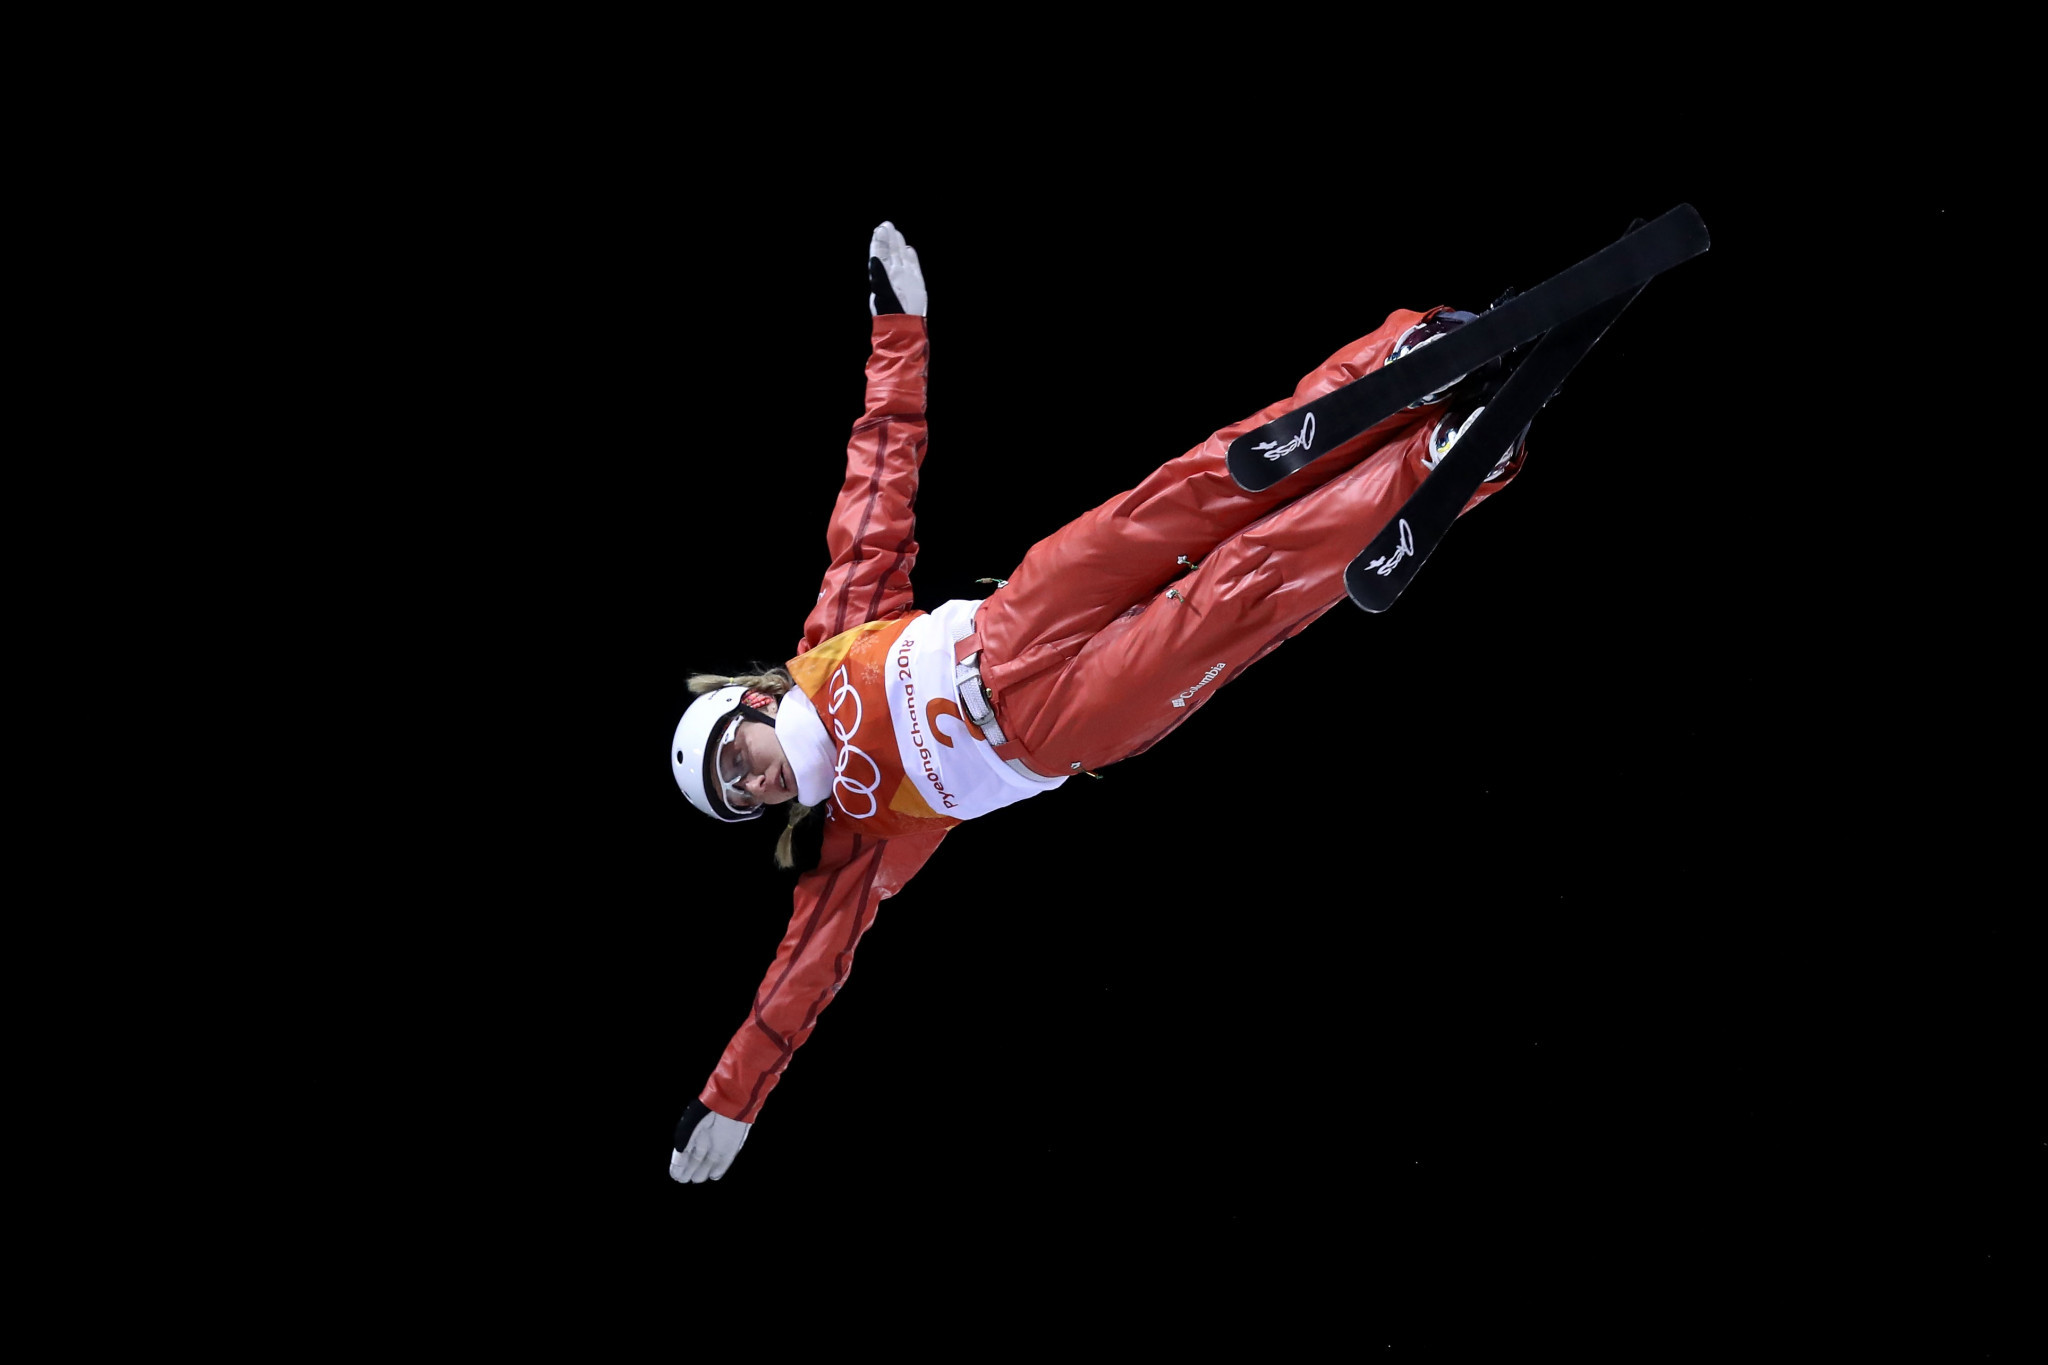 Reigning Olympic aerials champion Hanna Huskova won the women's event in Moscow ©Getty Images